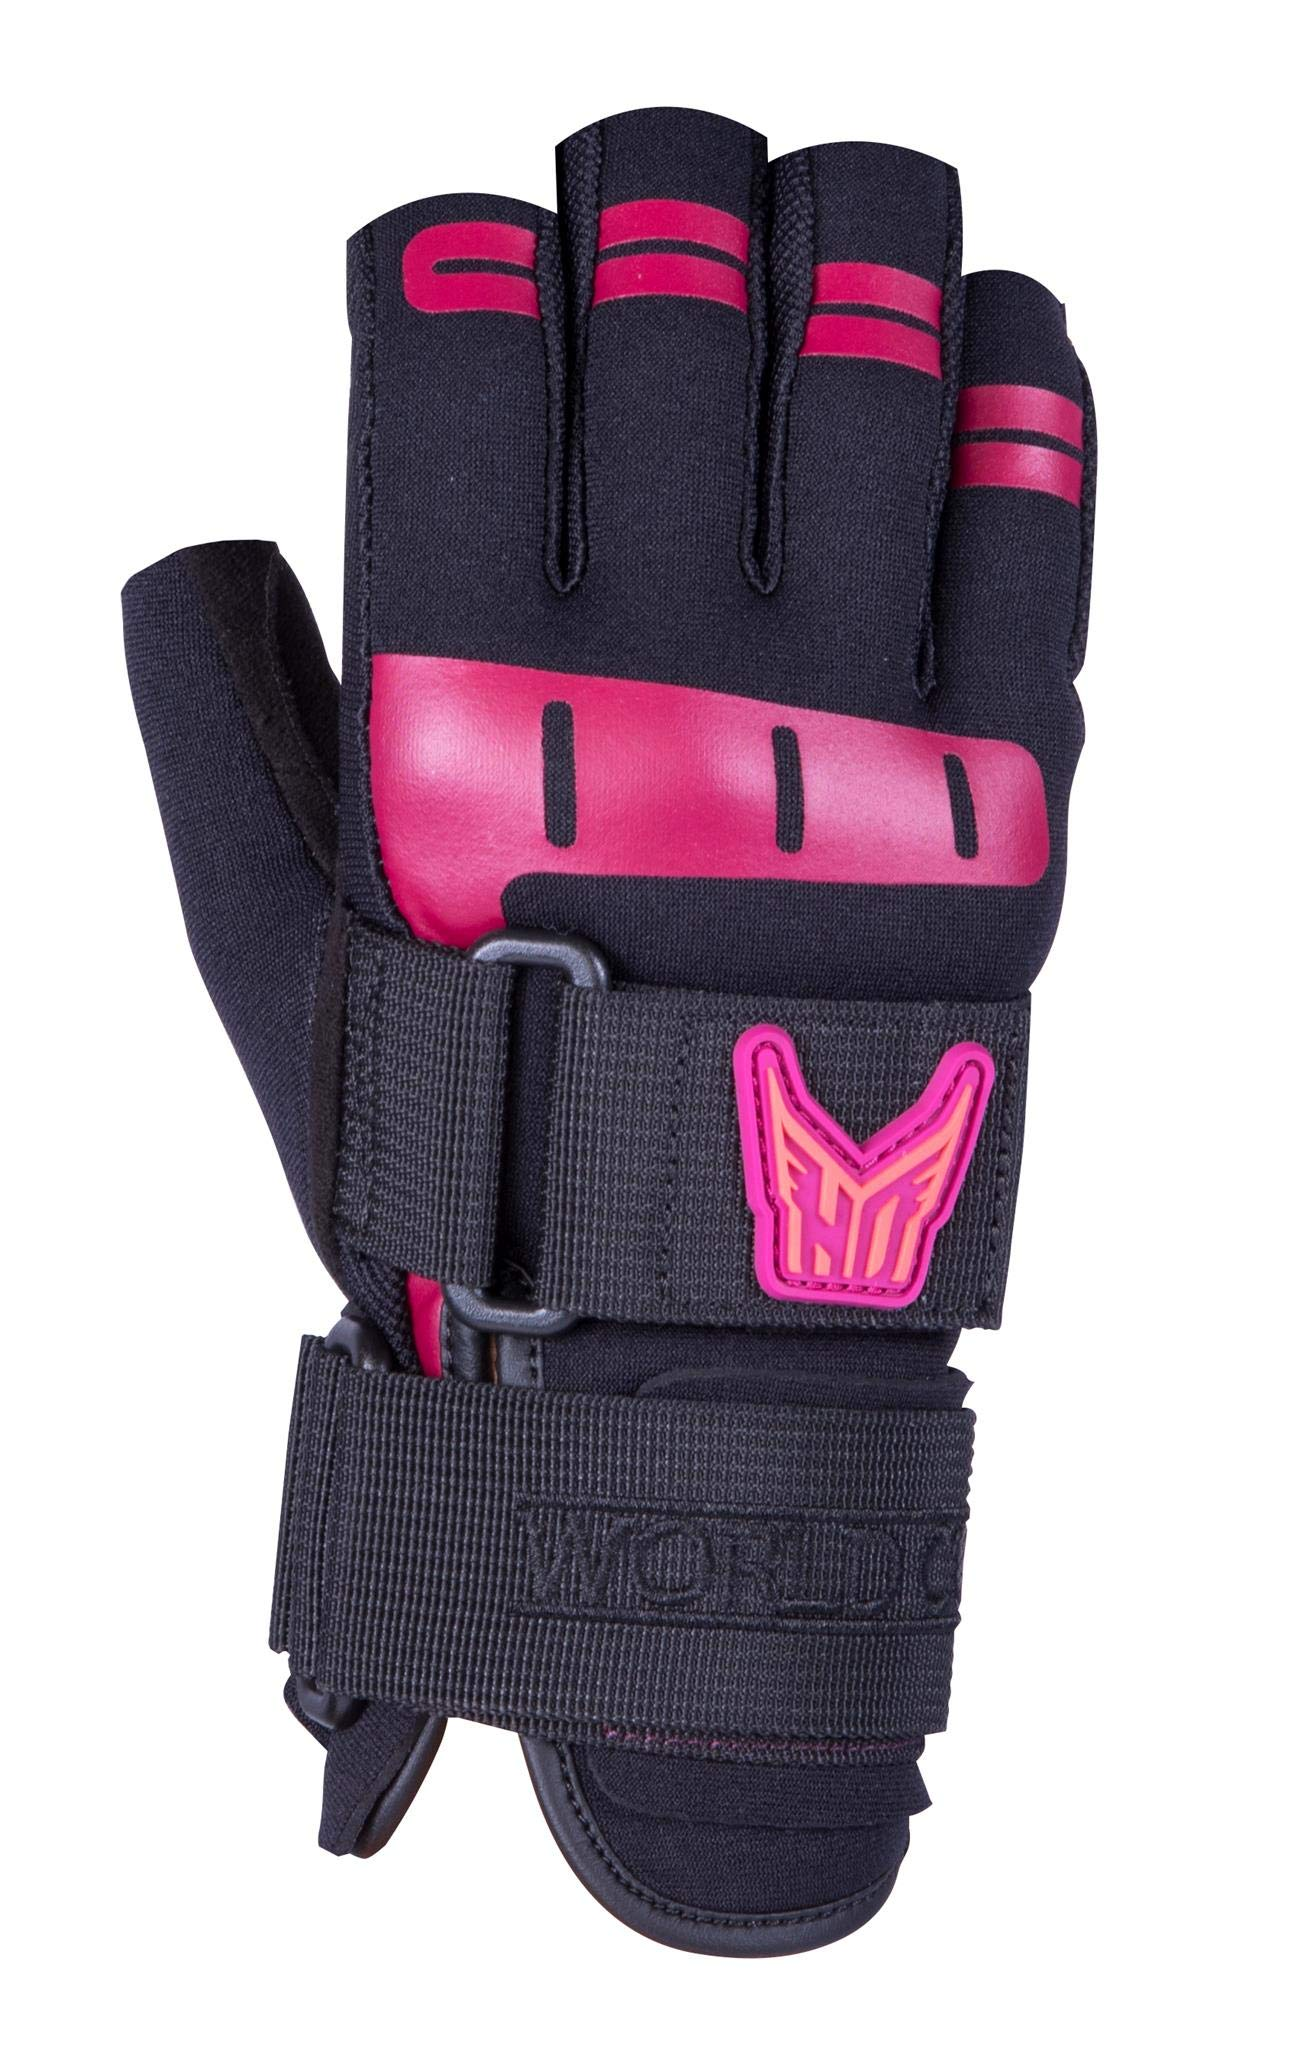 Ho Women's World Cup 3/4 Glove Black/Pink (Xs) by HO Sports